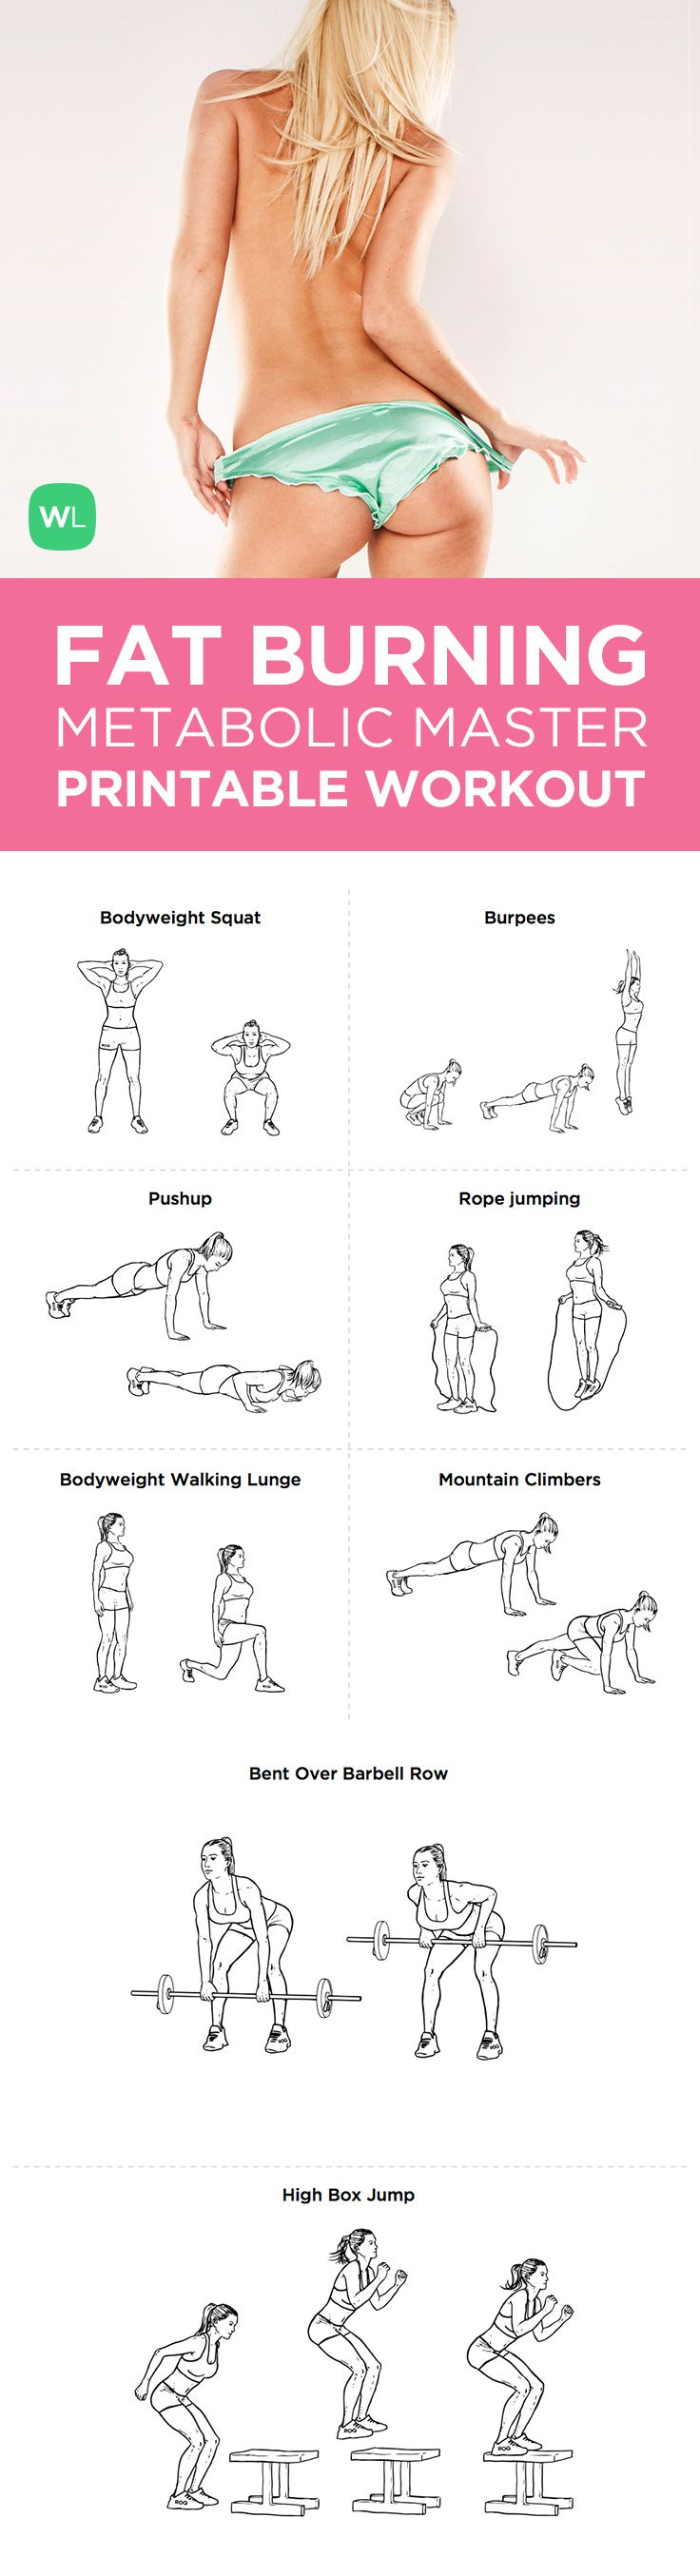 Gym Workout Routines For Weight Loss Pdf | EOUA Blog